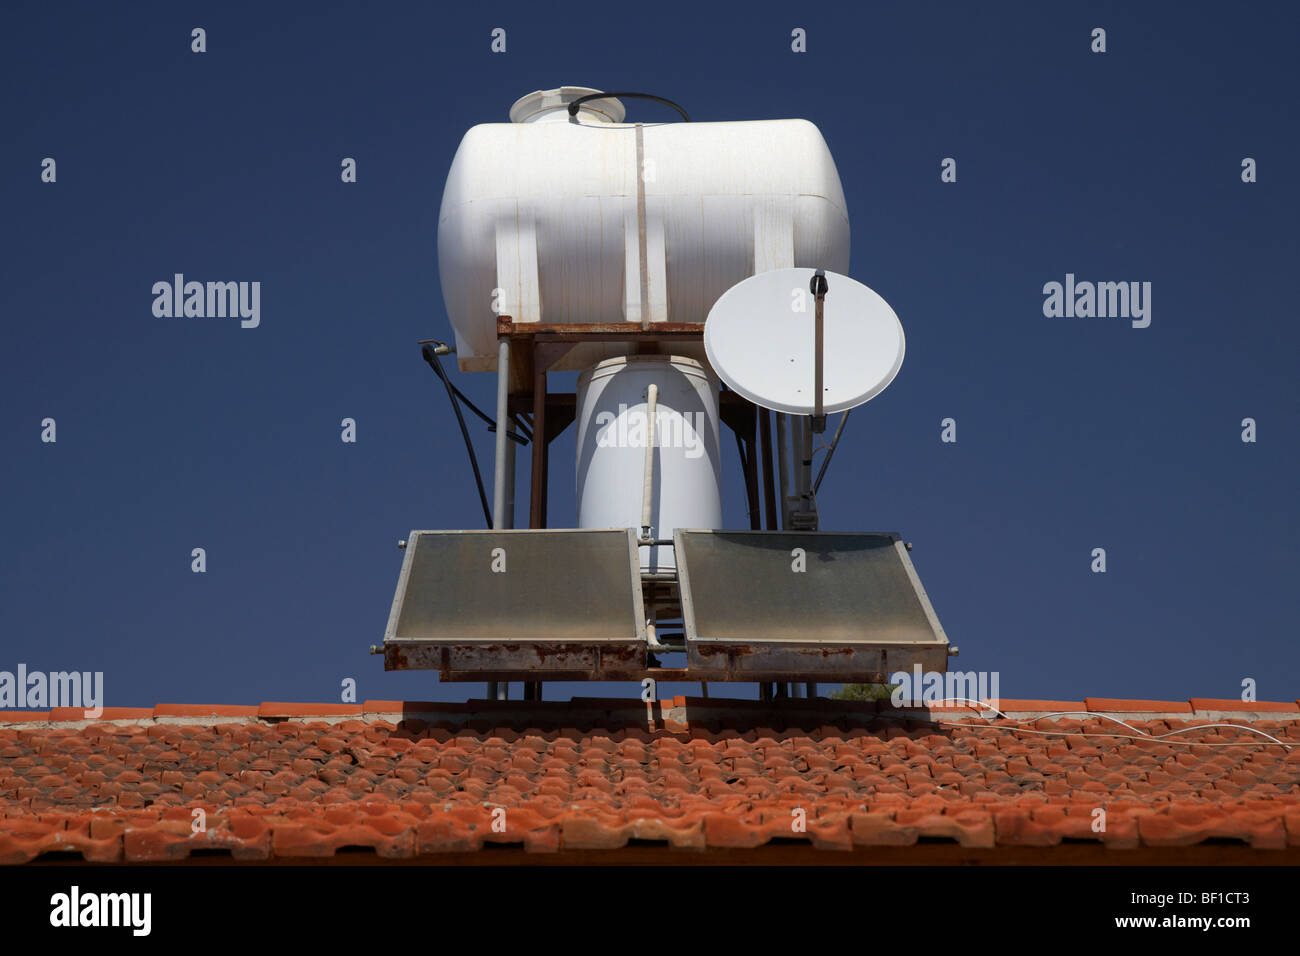 water tank feed and solar heating panels and satellite dish in republic of cyprus europe - Stock Image